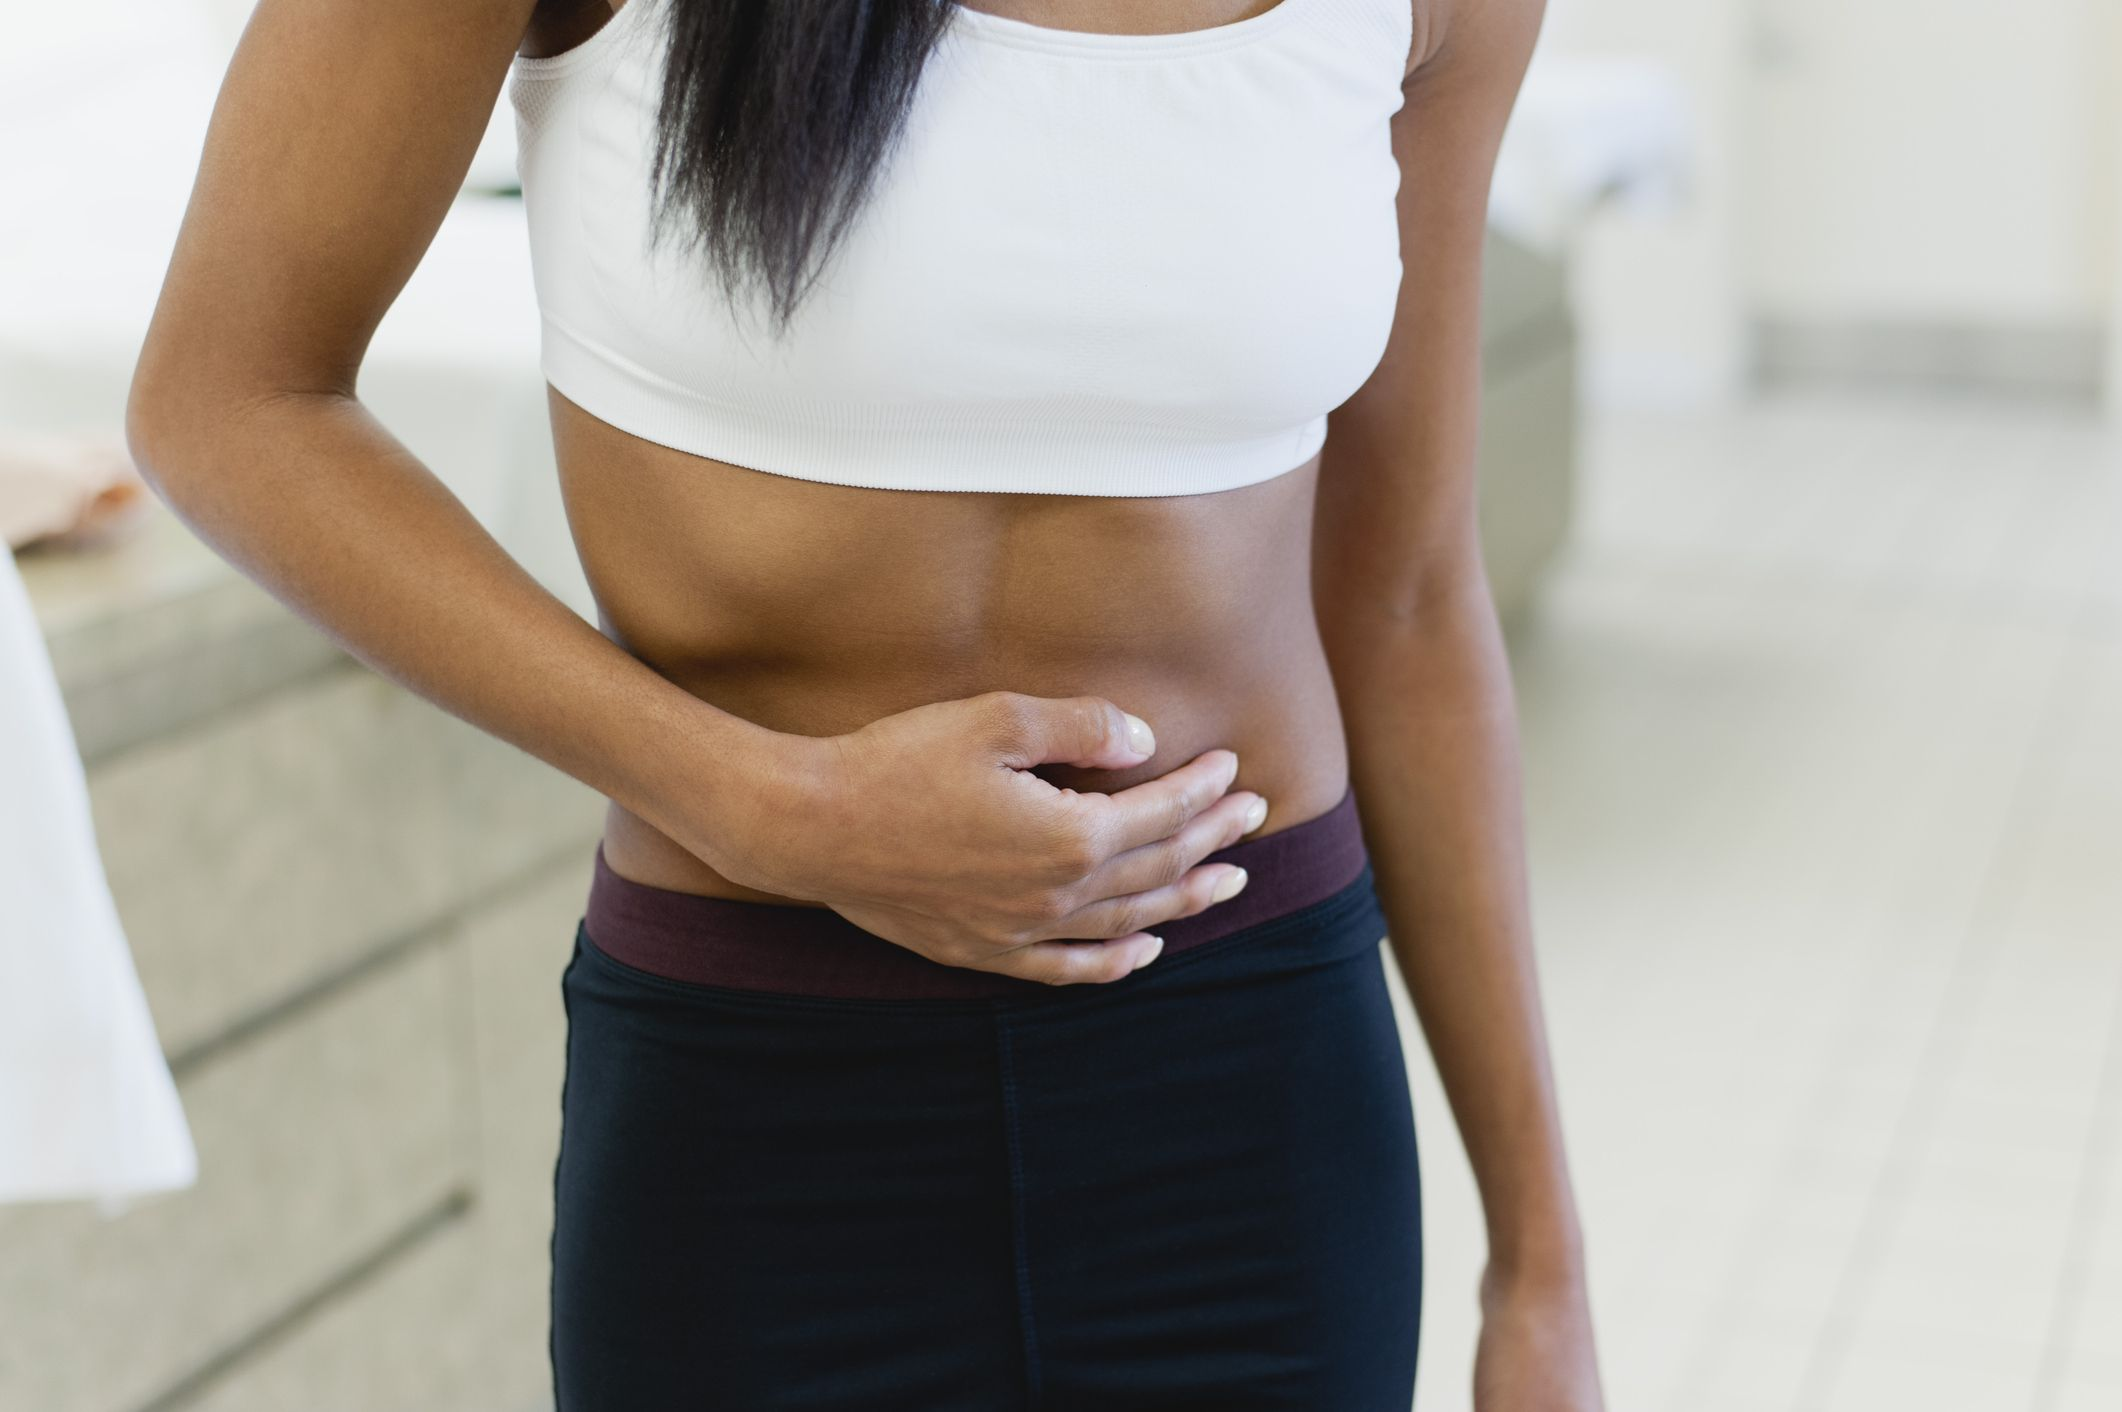 Stabbing Pain In Stomach - Abdominal Pain Symptoms